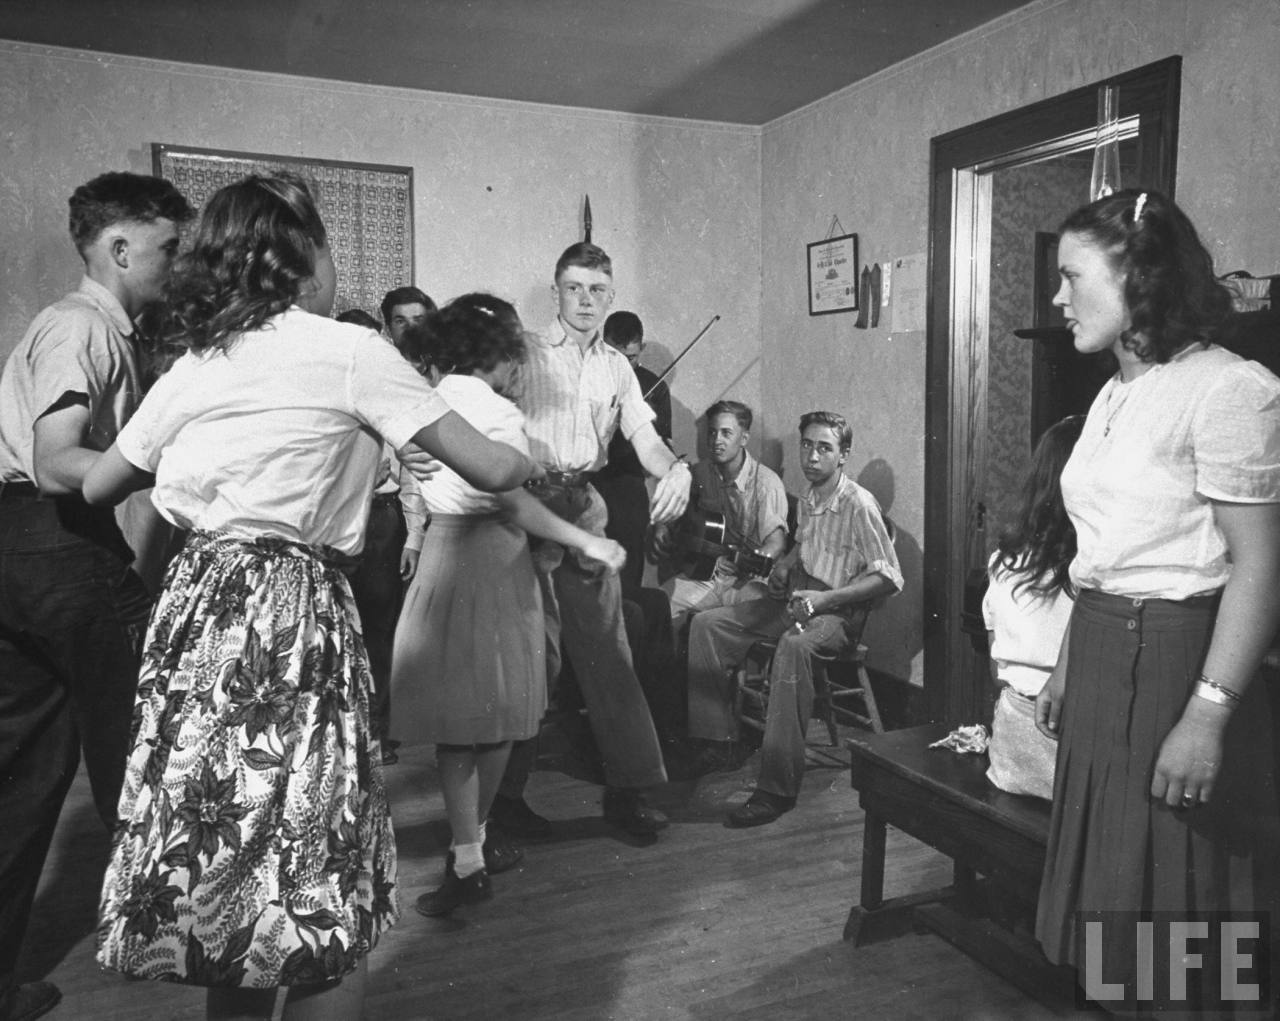 Kansas Farm Boy, Dan Gardner (center) at 4-H square dance.